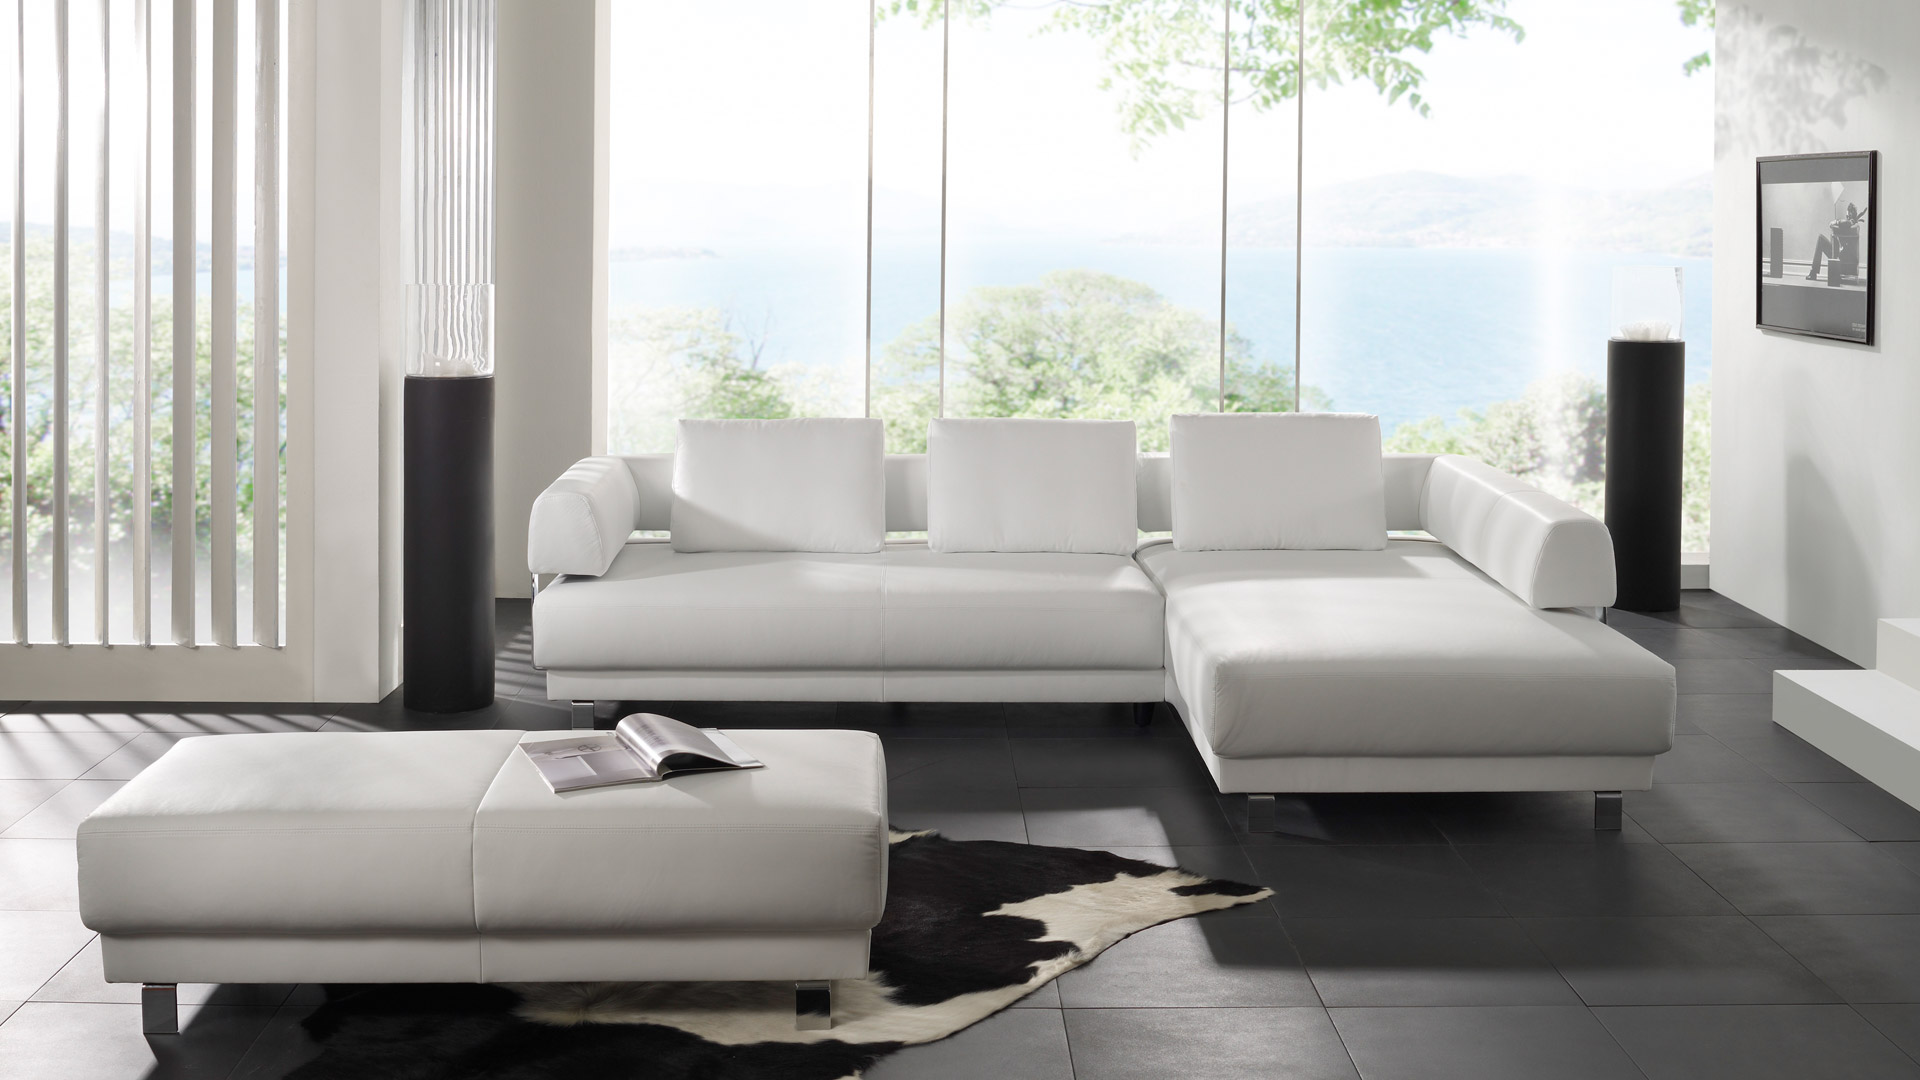 Fabelhaft Schillig Sofas Das Beste Von Home; Httpwww.decotecoreviewwp-contentuploads201306wonderful-modern-style-minimalist-white- Schillig-sofa-design-ideas